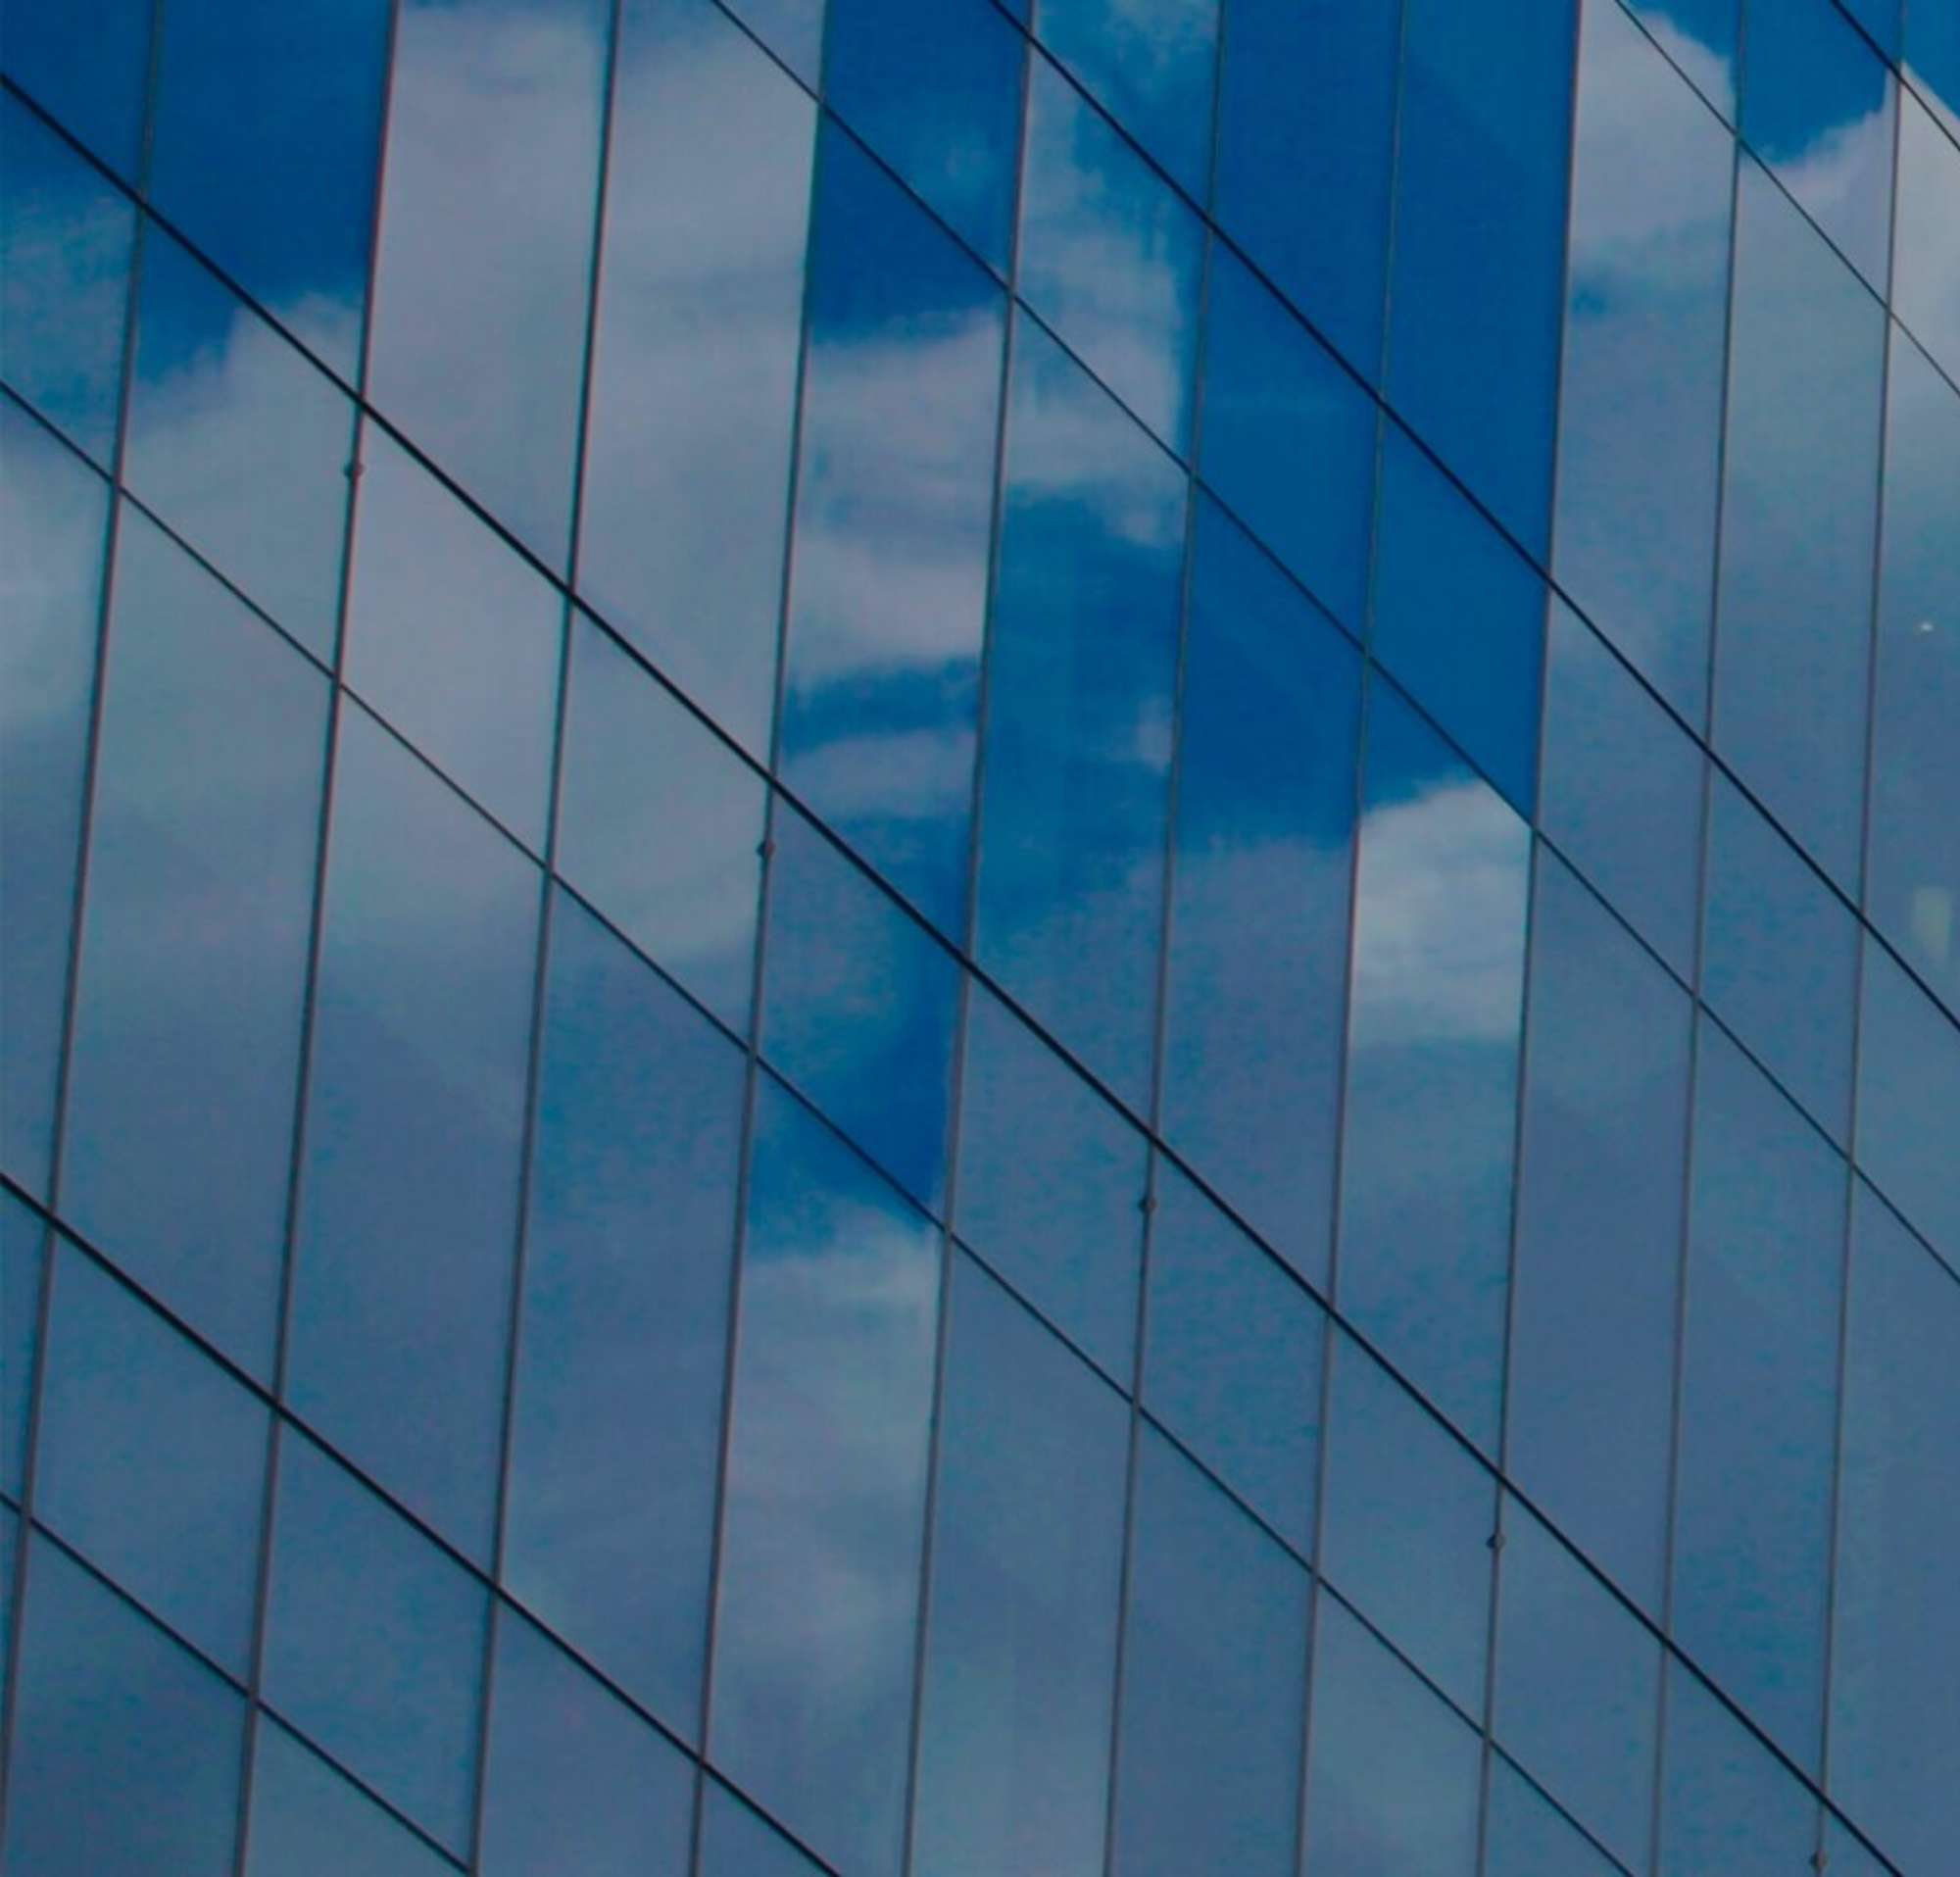 Glass windows on a high rise building, reflecting clouds.